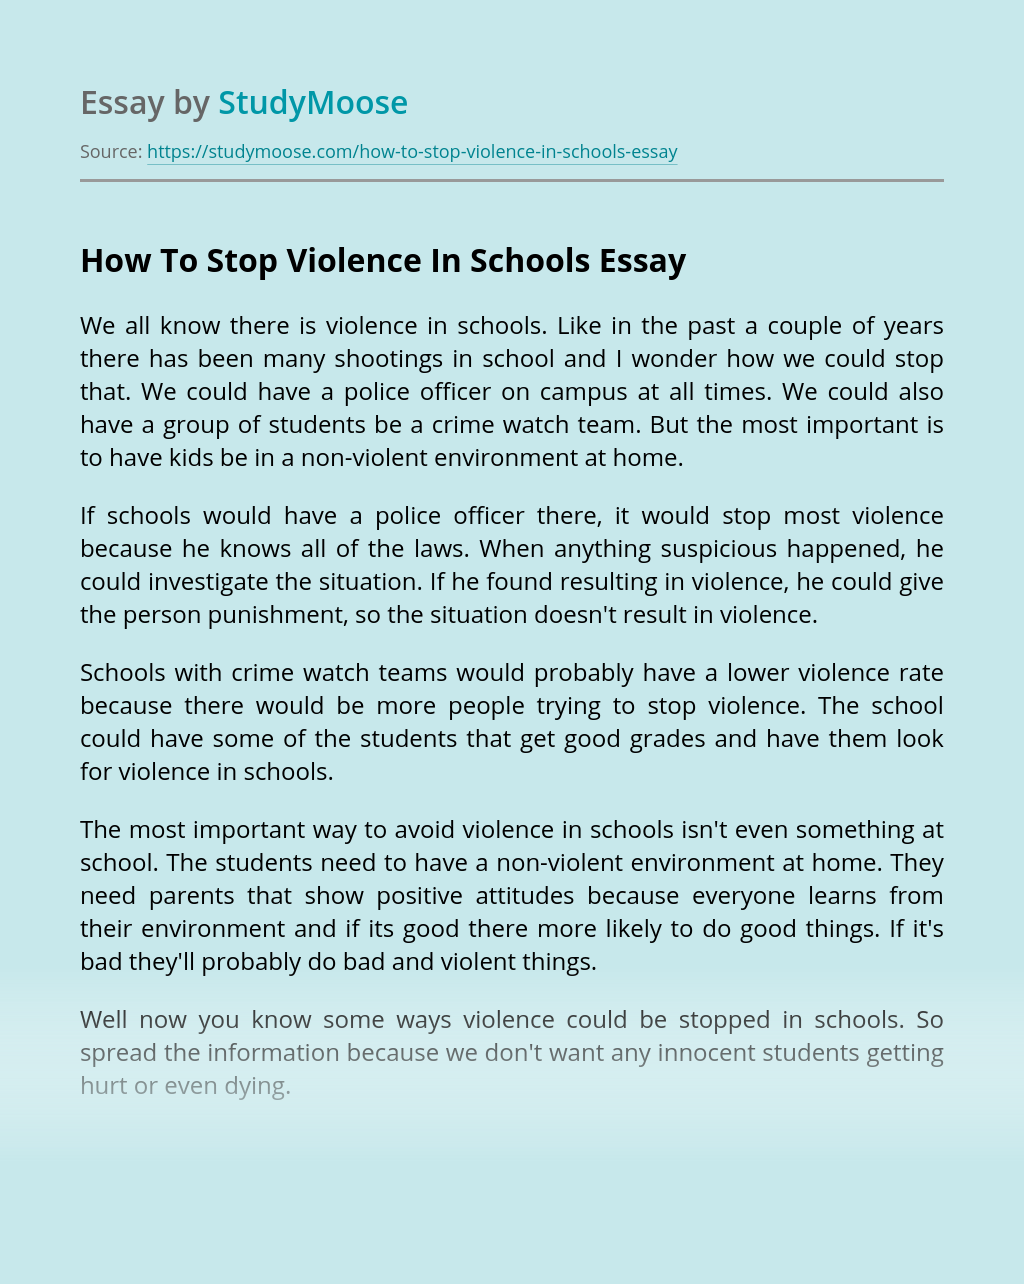 How To Stop Violence In Schools